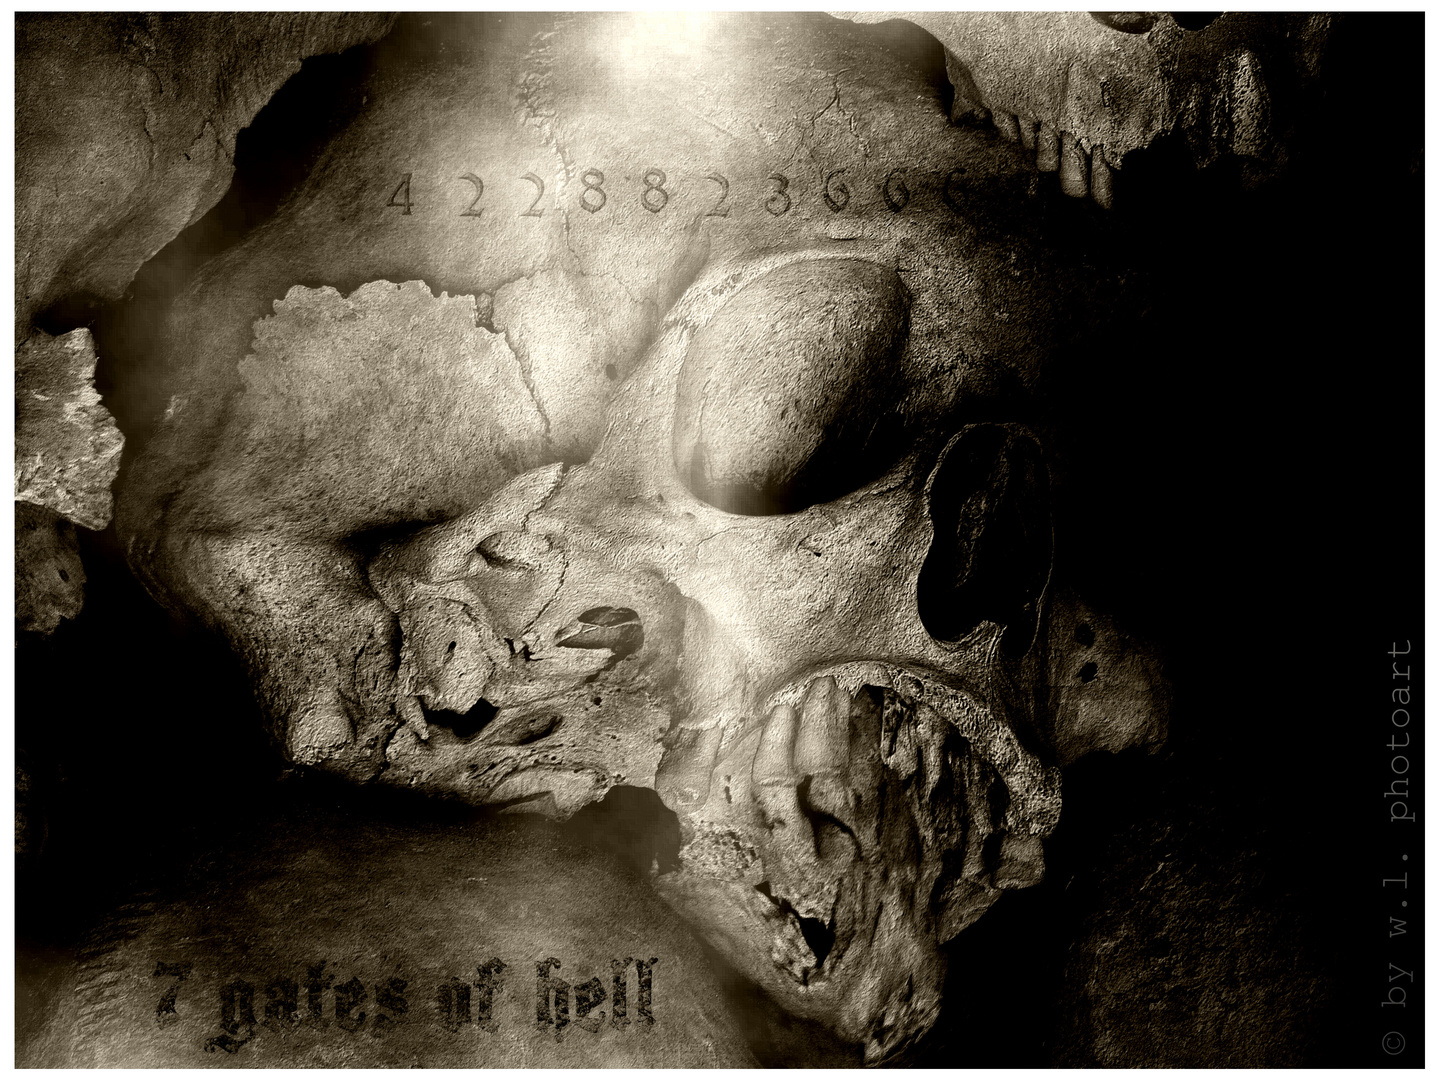 ´ 7 gates of hell ´